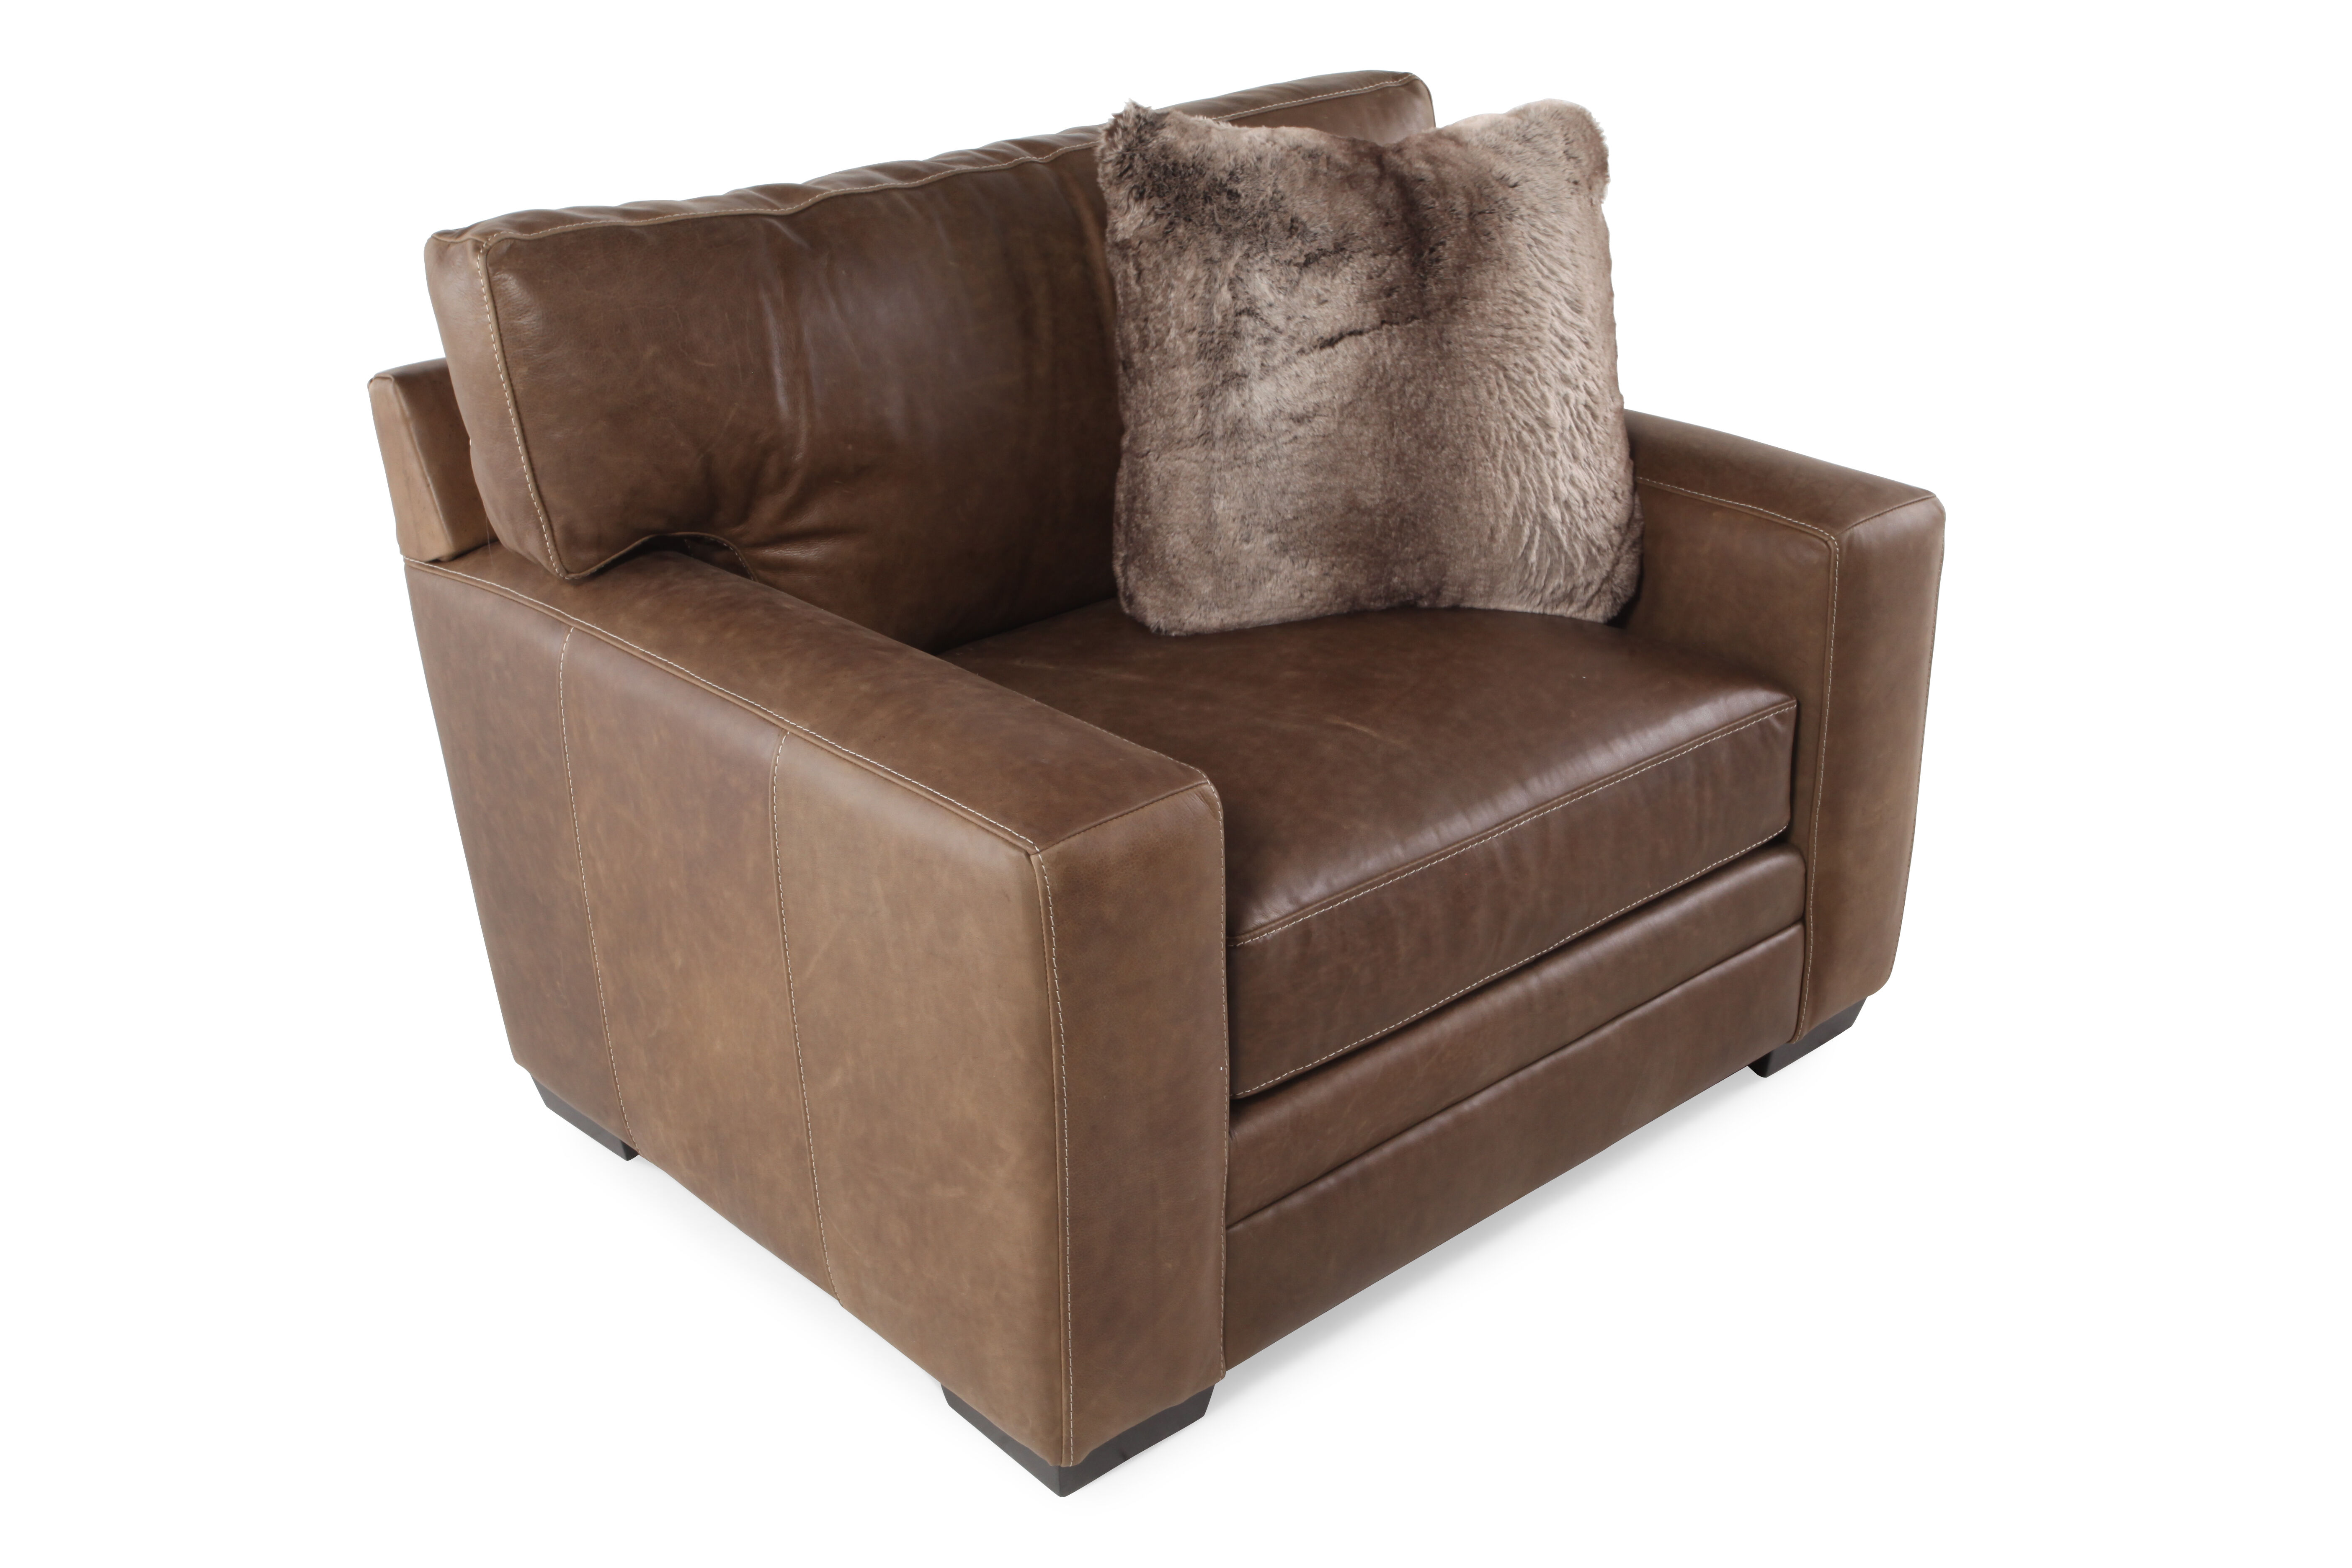 low profile chairs office chair spare parts leather 47 quot and a half in brown mathis